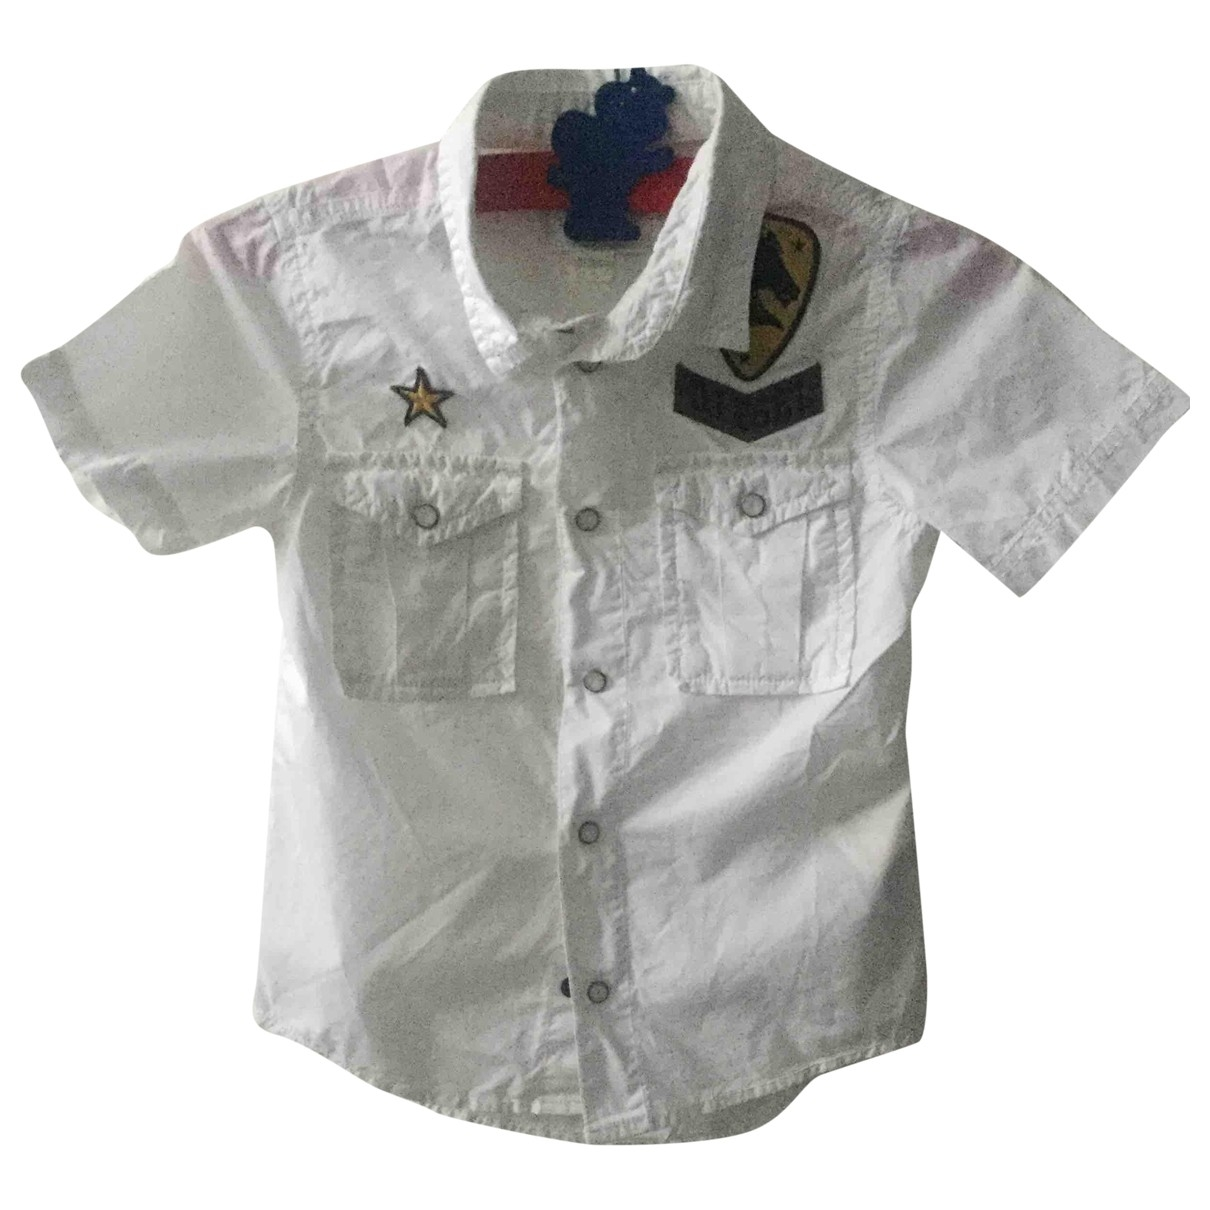 Diesel \N White Cotton  top for Kids 4 years - until 40 inches UK